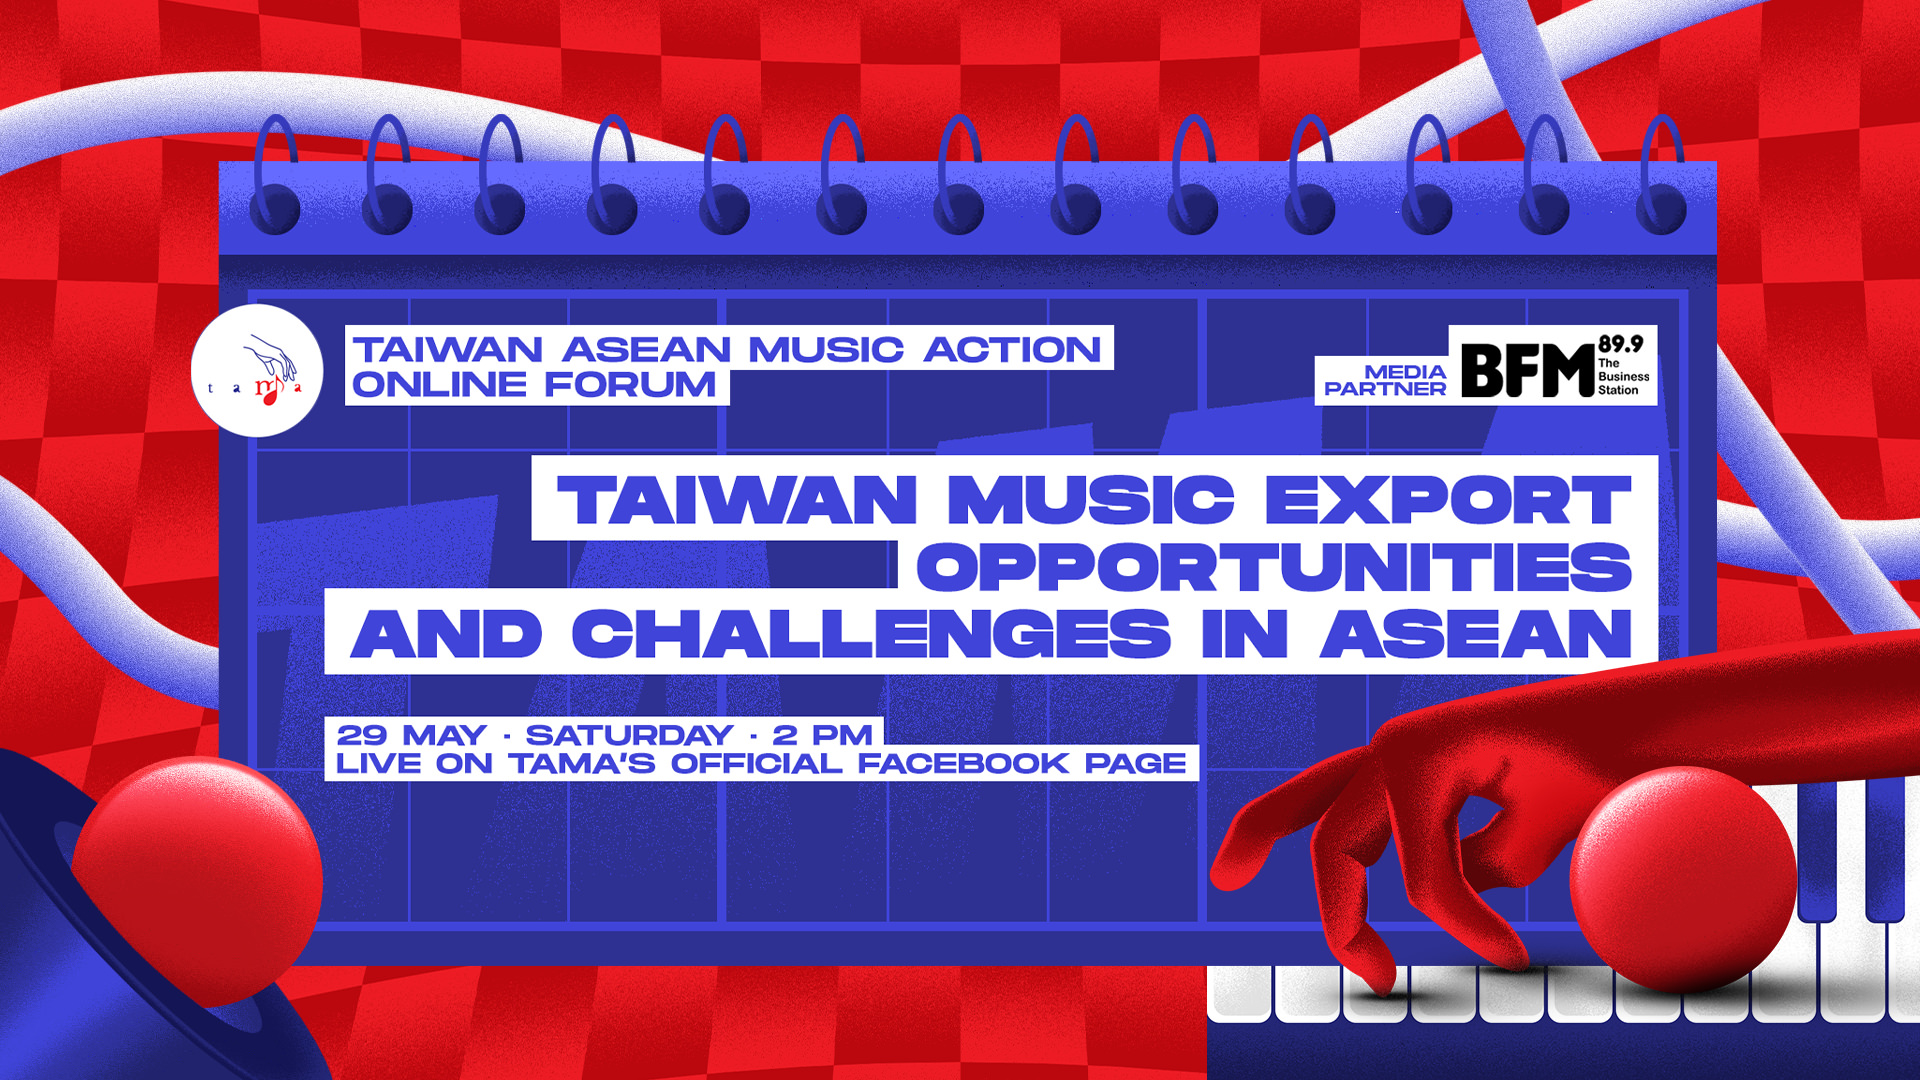 Taiwan ASEAN Music Action Online Music Symposium 2021 To Discuss The New Southbound Music Policy